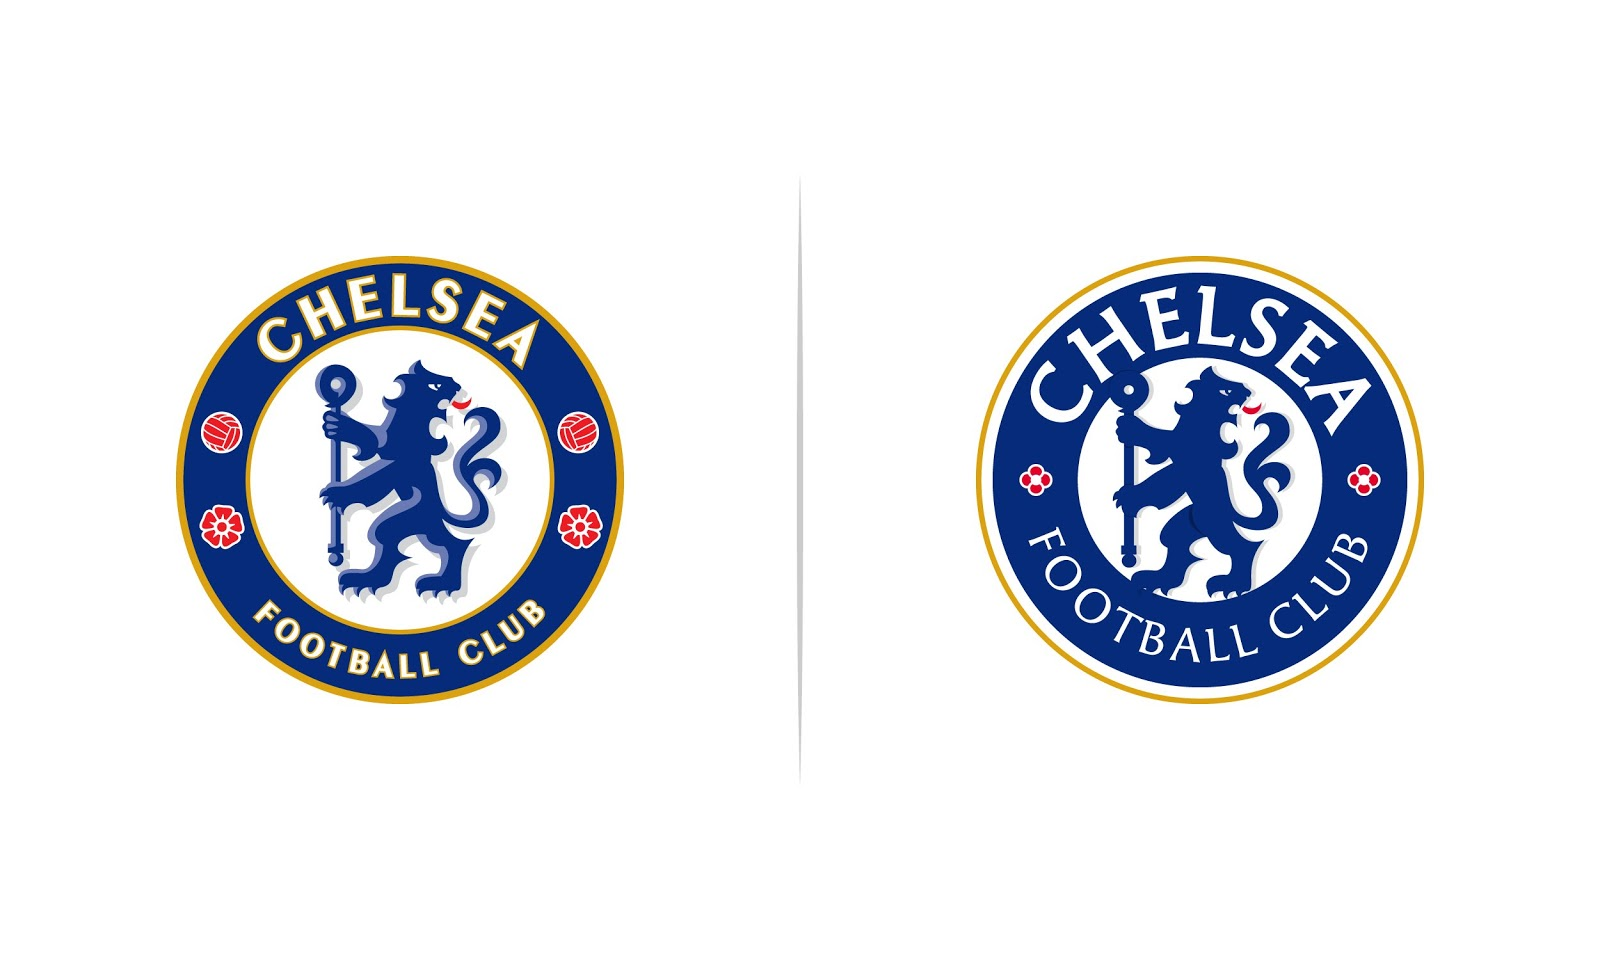 Chelsea Fc Crest Redesign By Socceredesign Footy Headlines